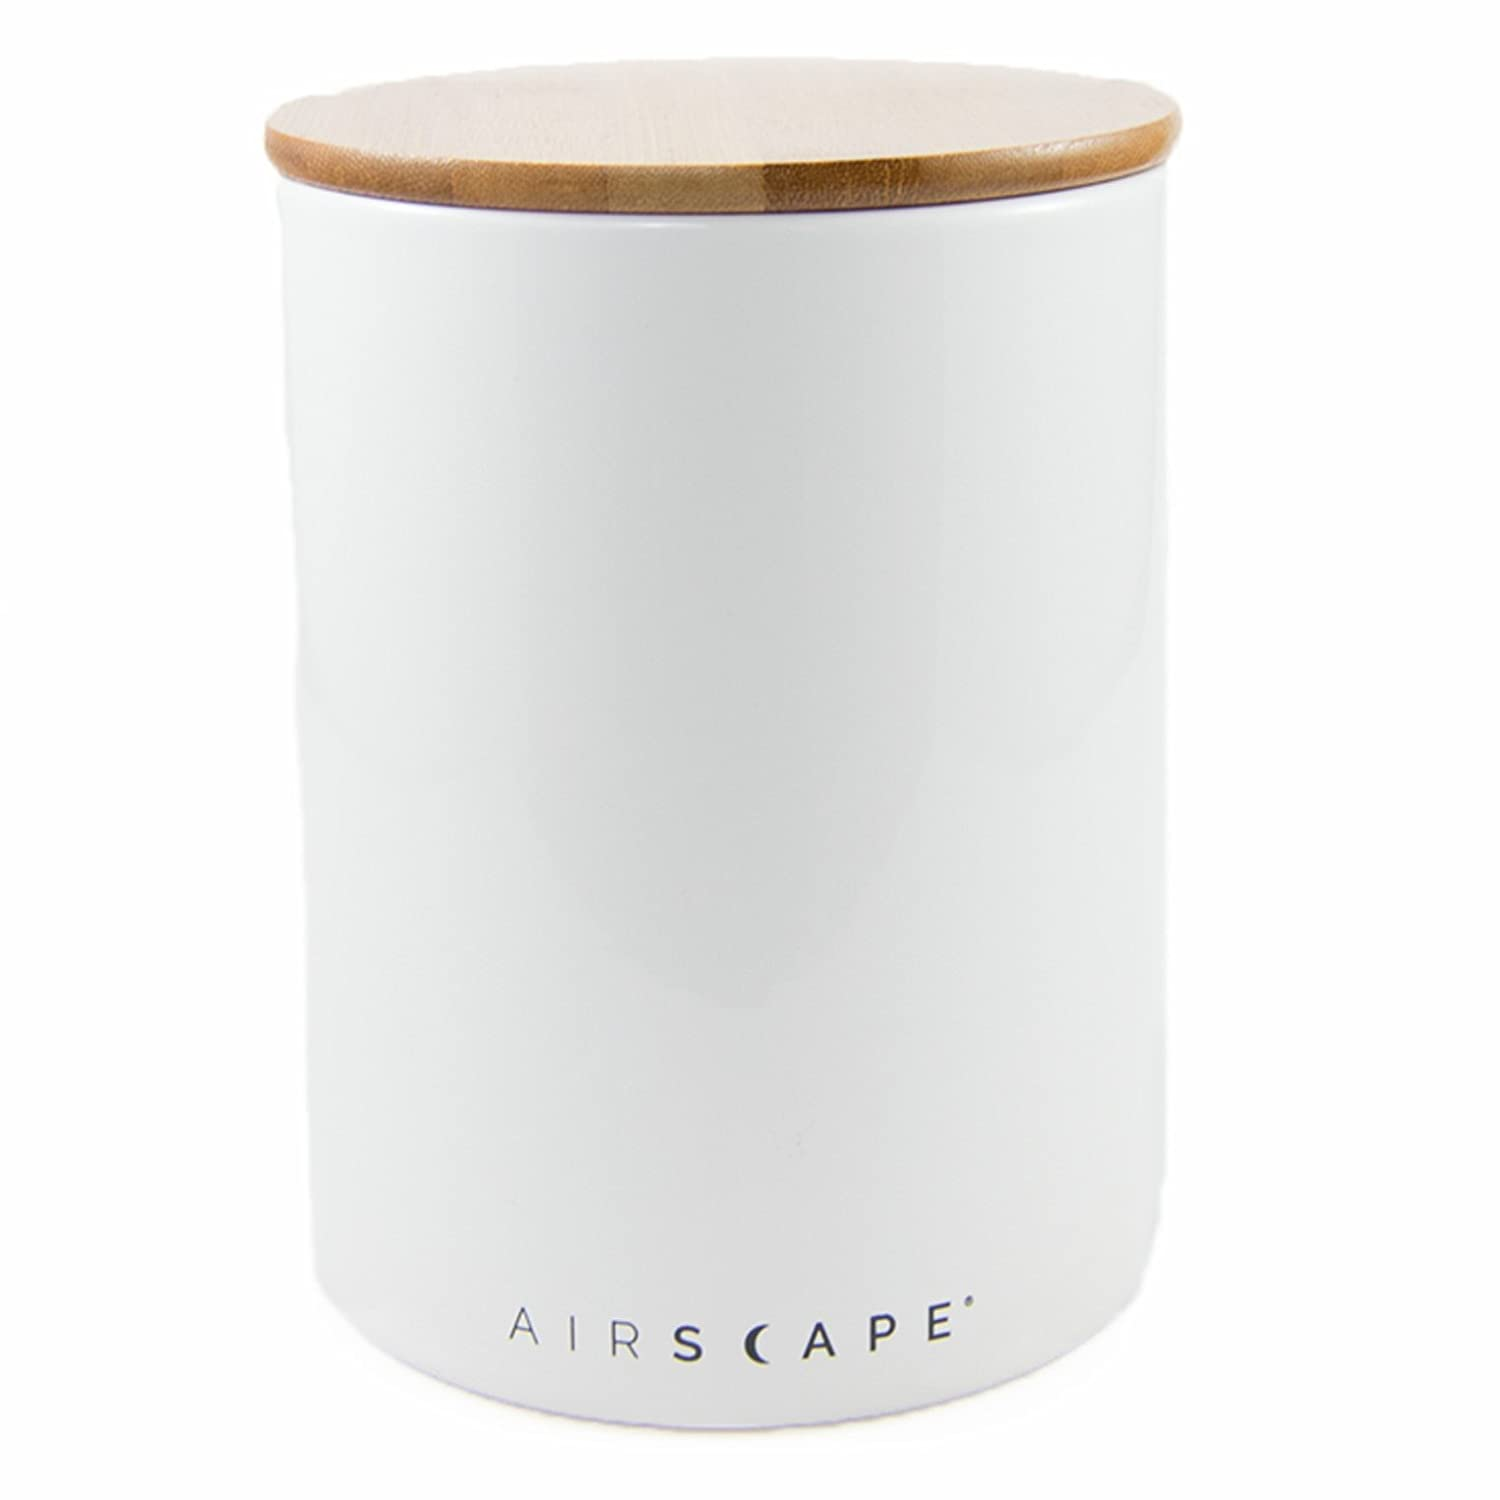 "Airscape Ceramic and Food Storage Canister, 7"" Large - Patented Airtight Inner Lid Preserves Food Freshness - Glazed Ceramic with Bamboo Top - Snowflake White"